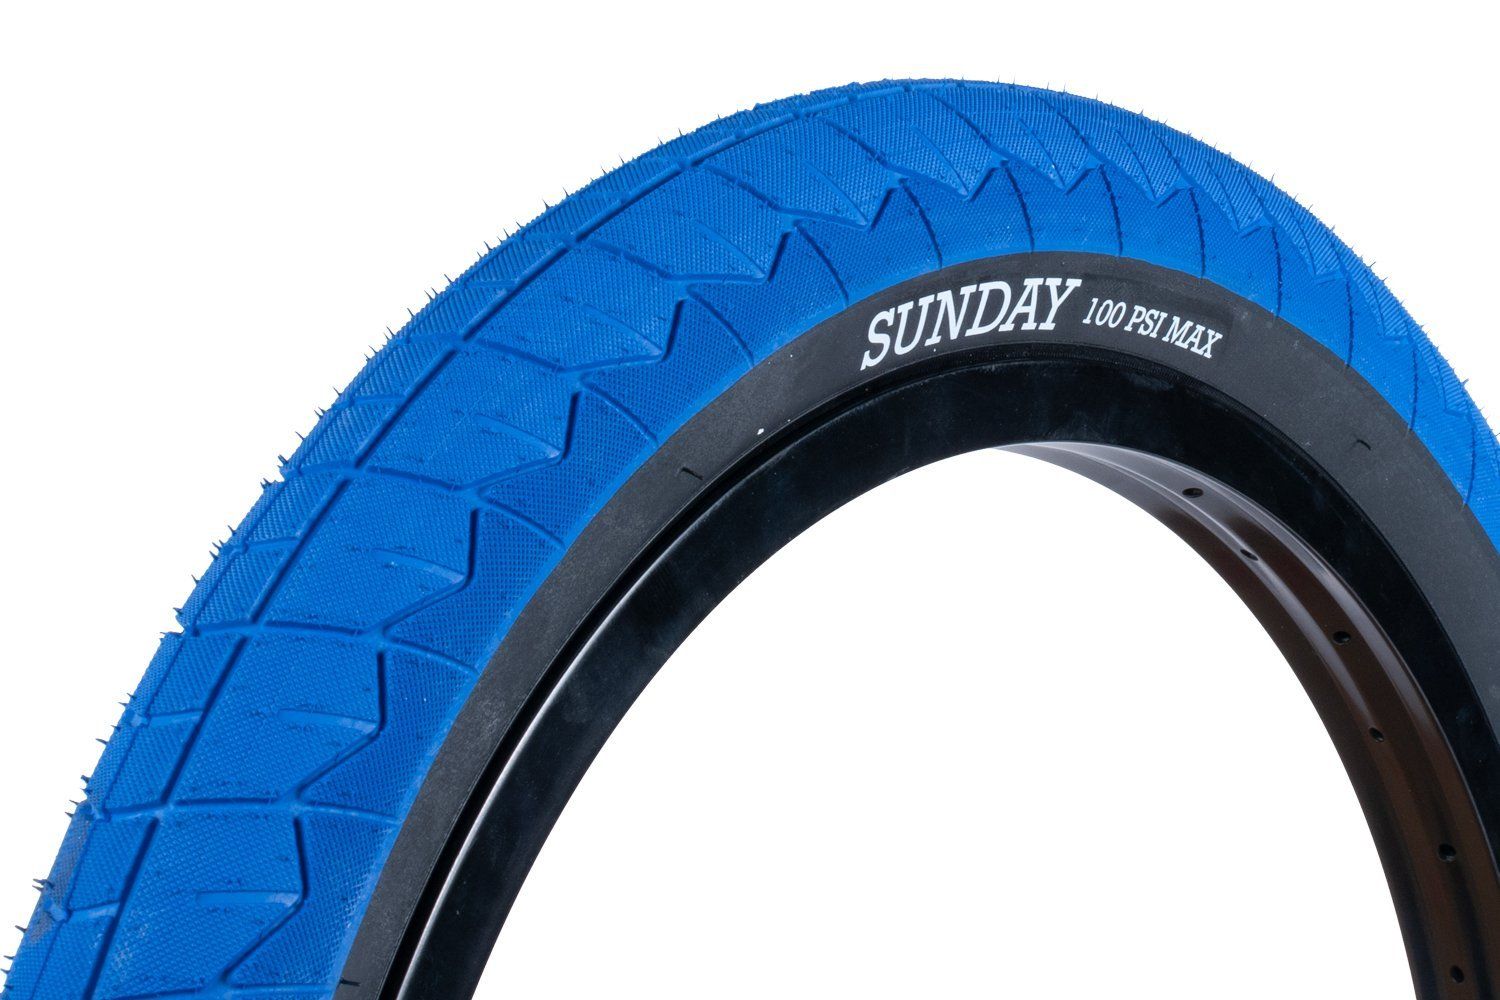 20x2.40 Sunday BMX Current V2 Tire - 100 psi - Blue w/ Black Sidewall